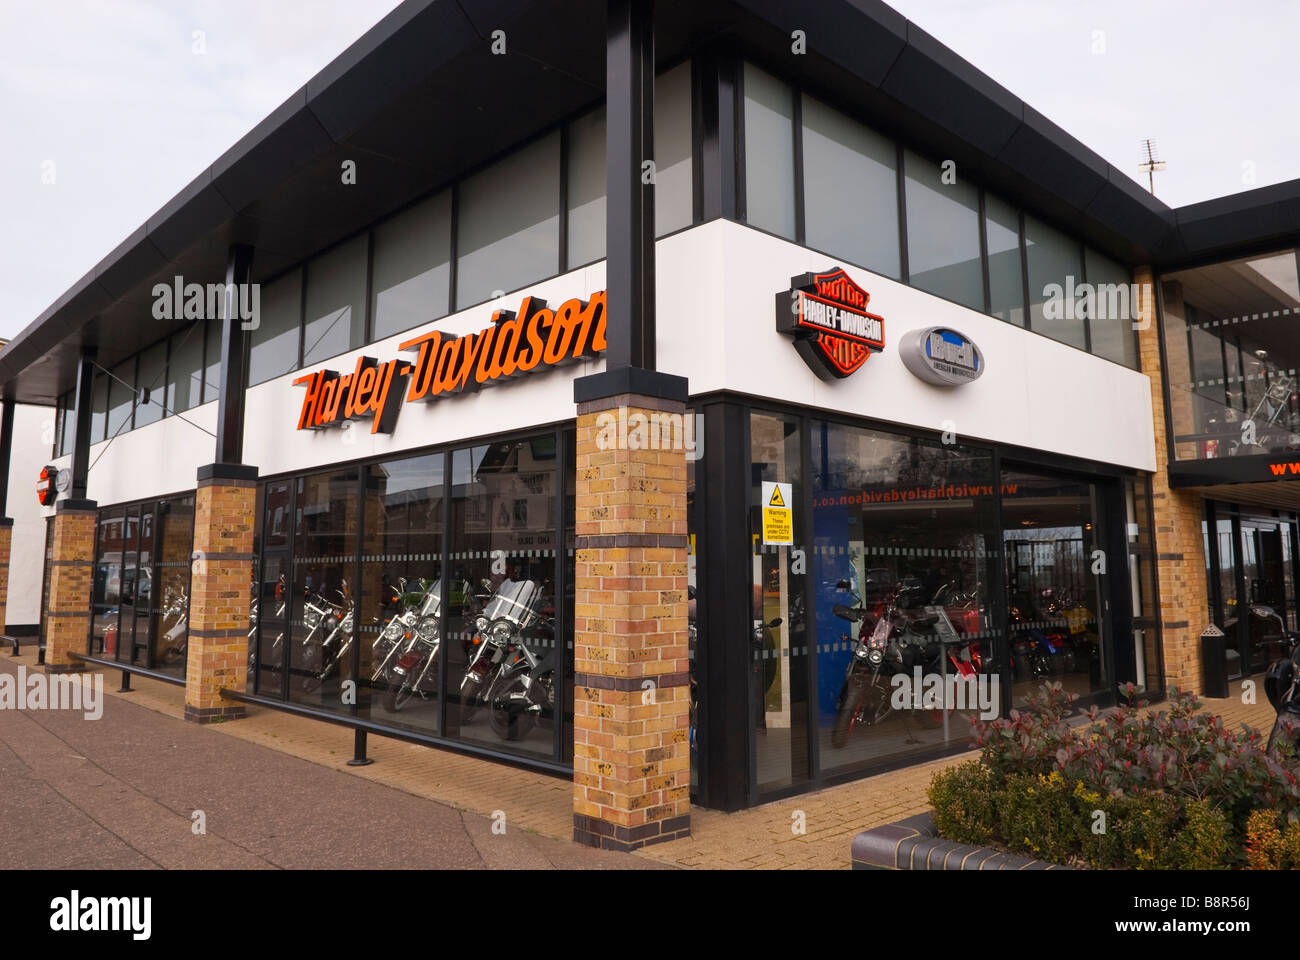 harley davidson motor cycles motorbike shop store selling motorcycles stock photo 22636618 alamy. Black Bedroom Furniture Sets. Home Design Ideas